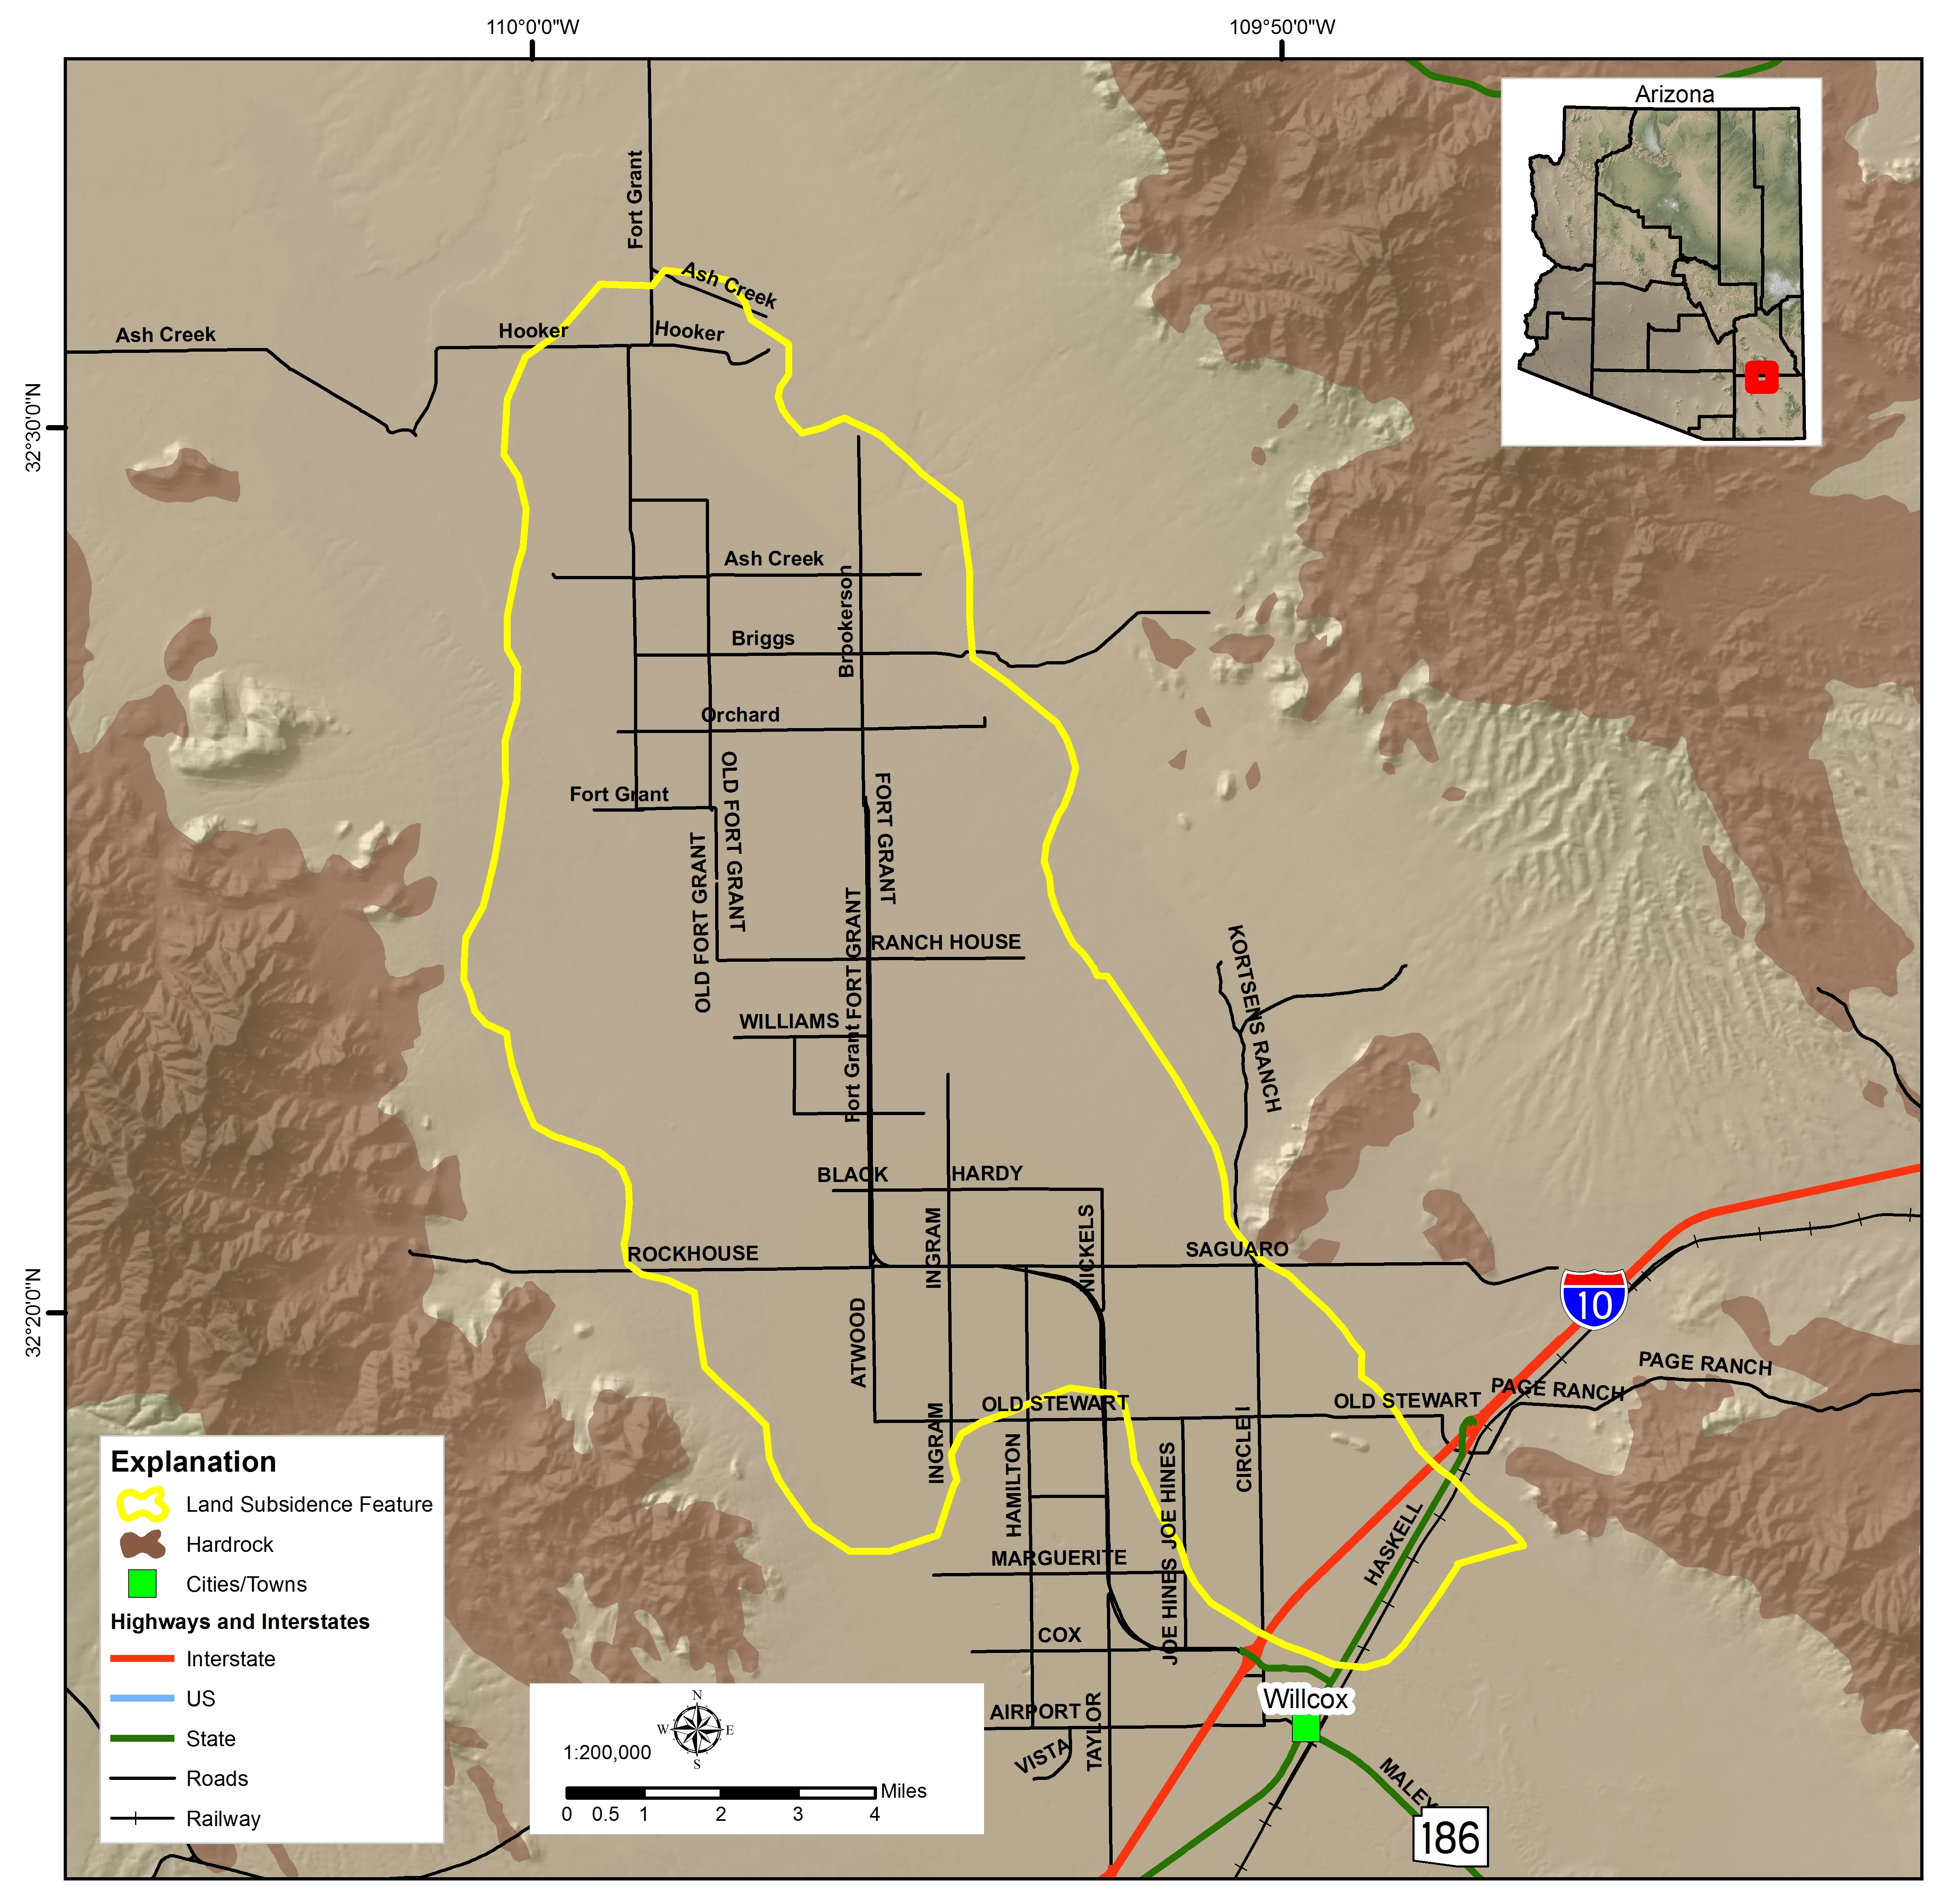 Fort Grant Road Land Subsidence